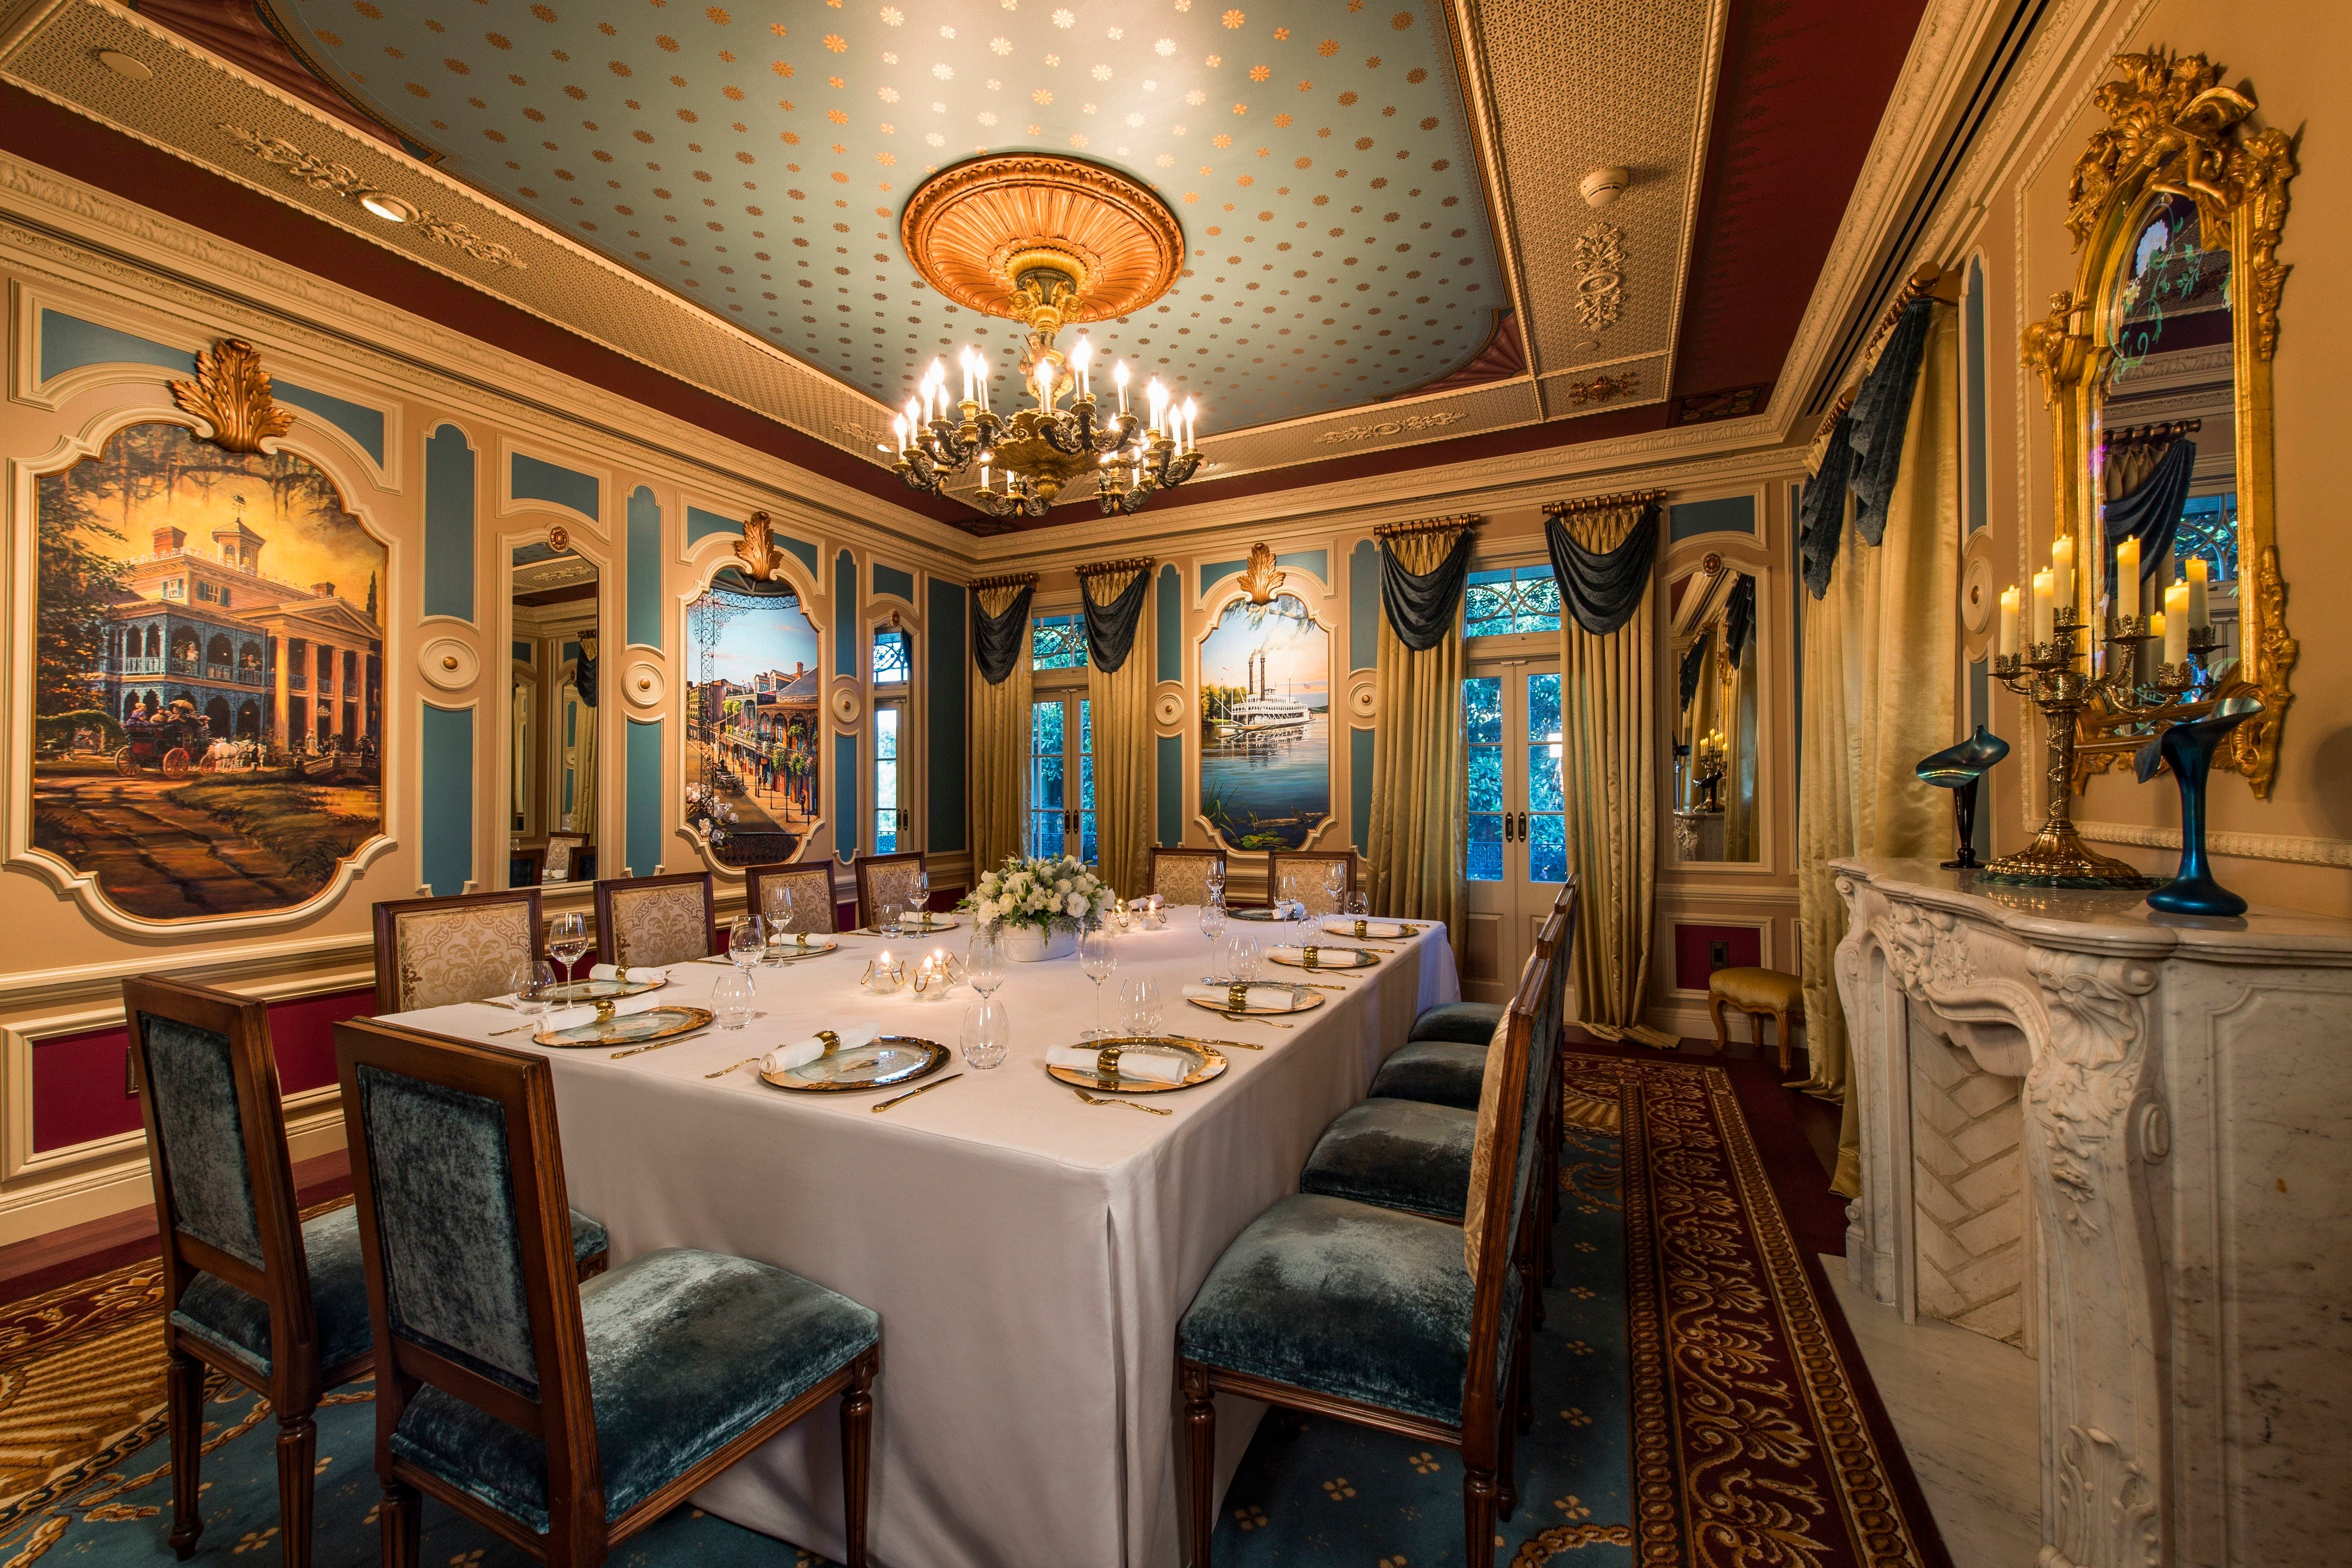 Dining room decor is based on Walt Disney's original plans for a private hangoutin the park.